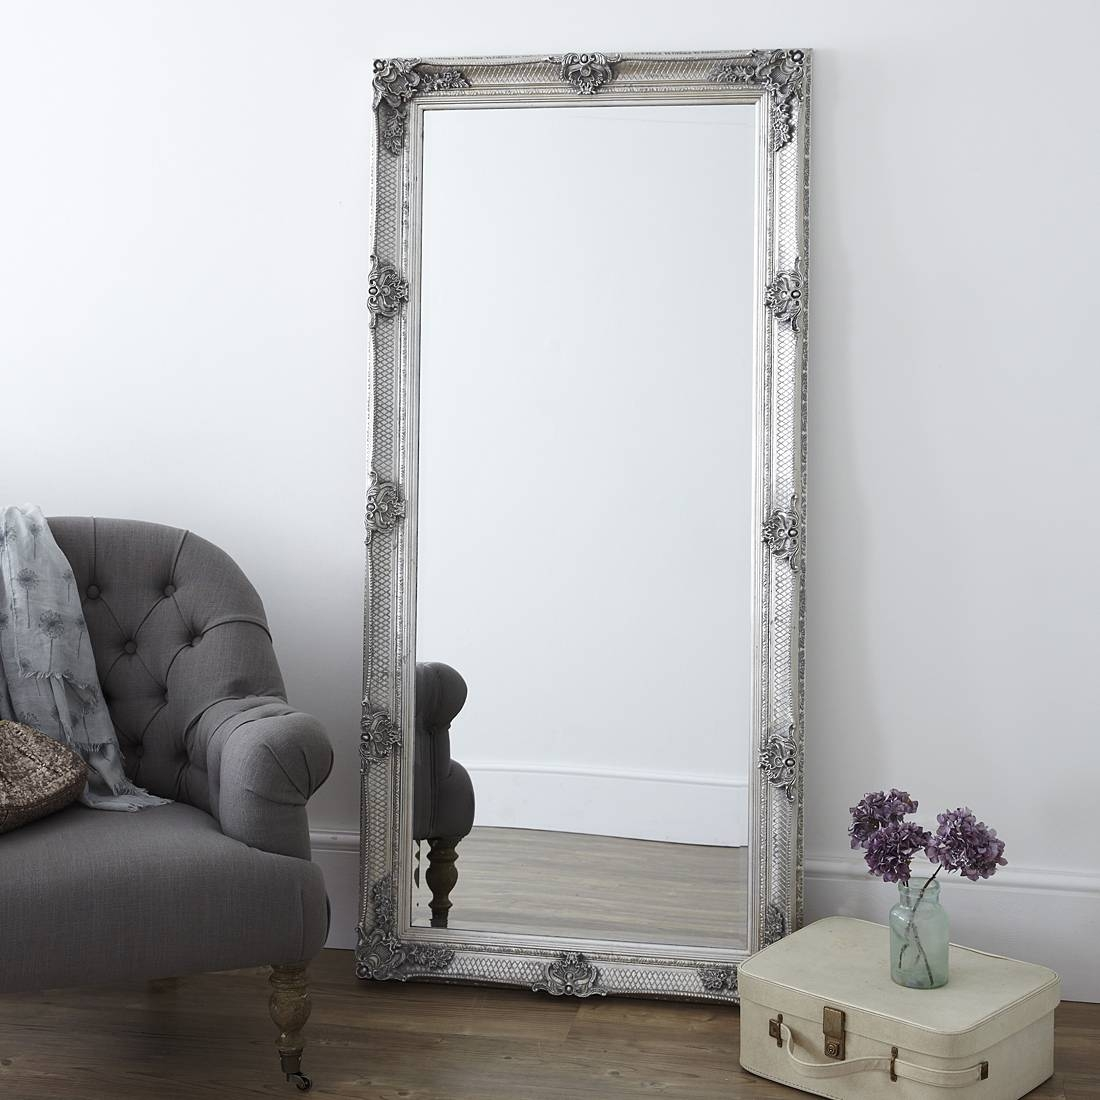 Decorative Antique Silver Full Length Mirror – Primrose & Plum intended for Ornate Full Length Mirrors (Image 5 of 25)